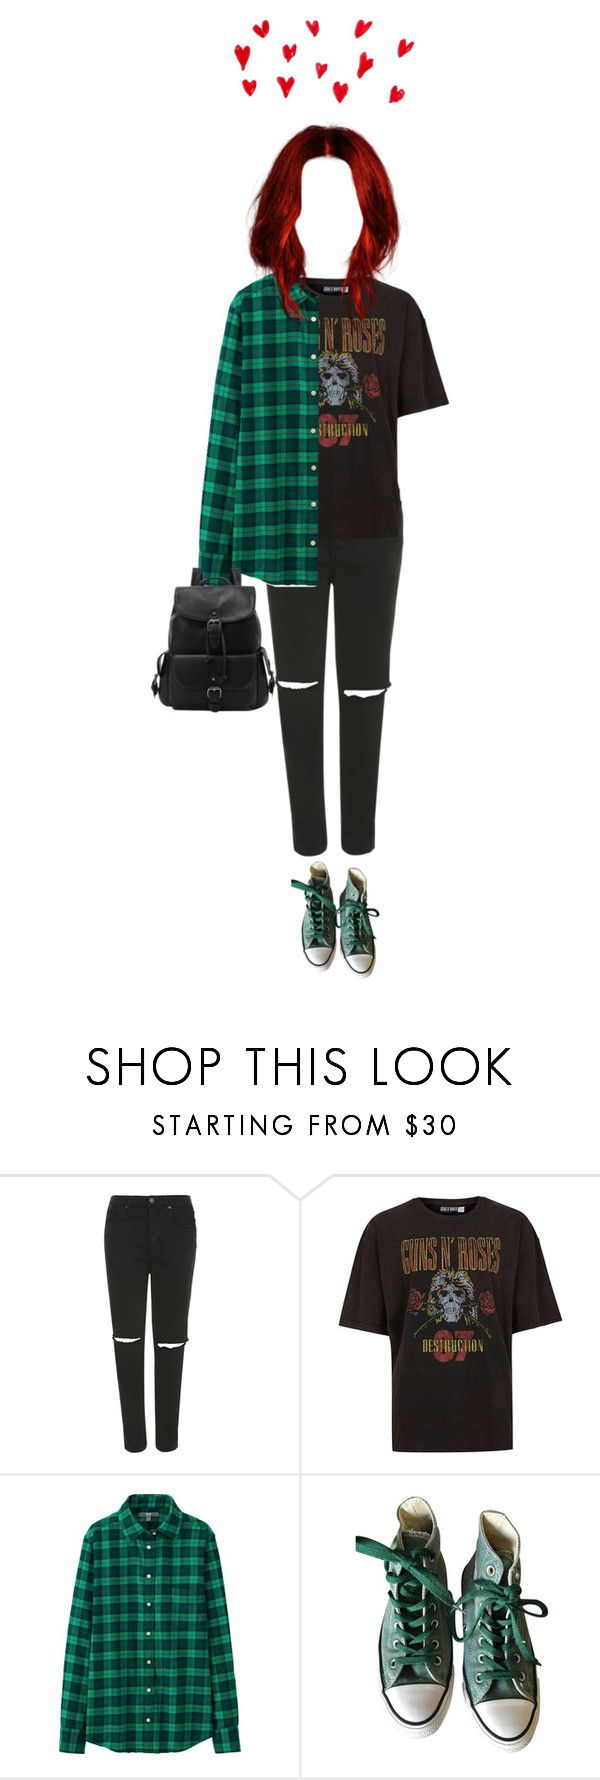 """""""39 ♡"""" by hey-how-are-you ❤ liked on Polyvore featuring Topshop, Topman, Uniqlo, Converse, Punk, rock, grunge and alternative"""